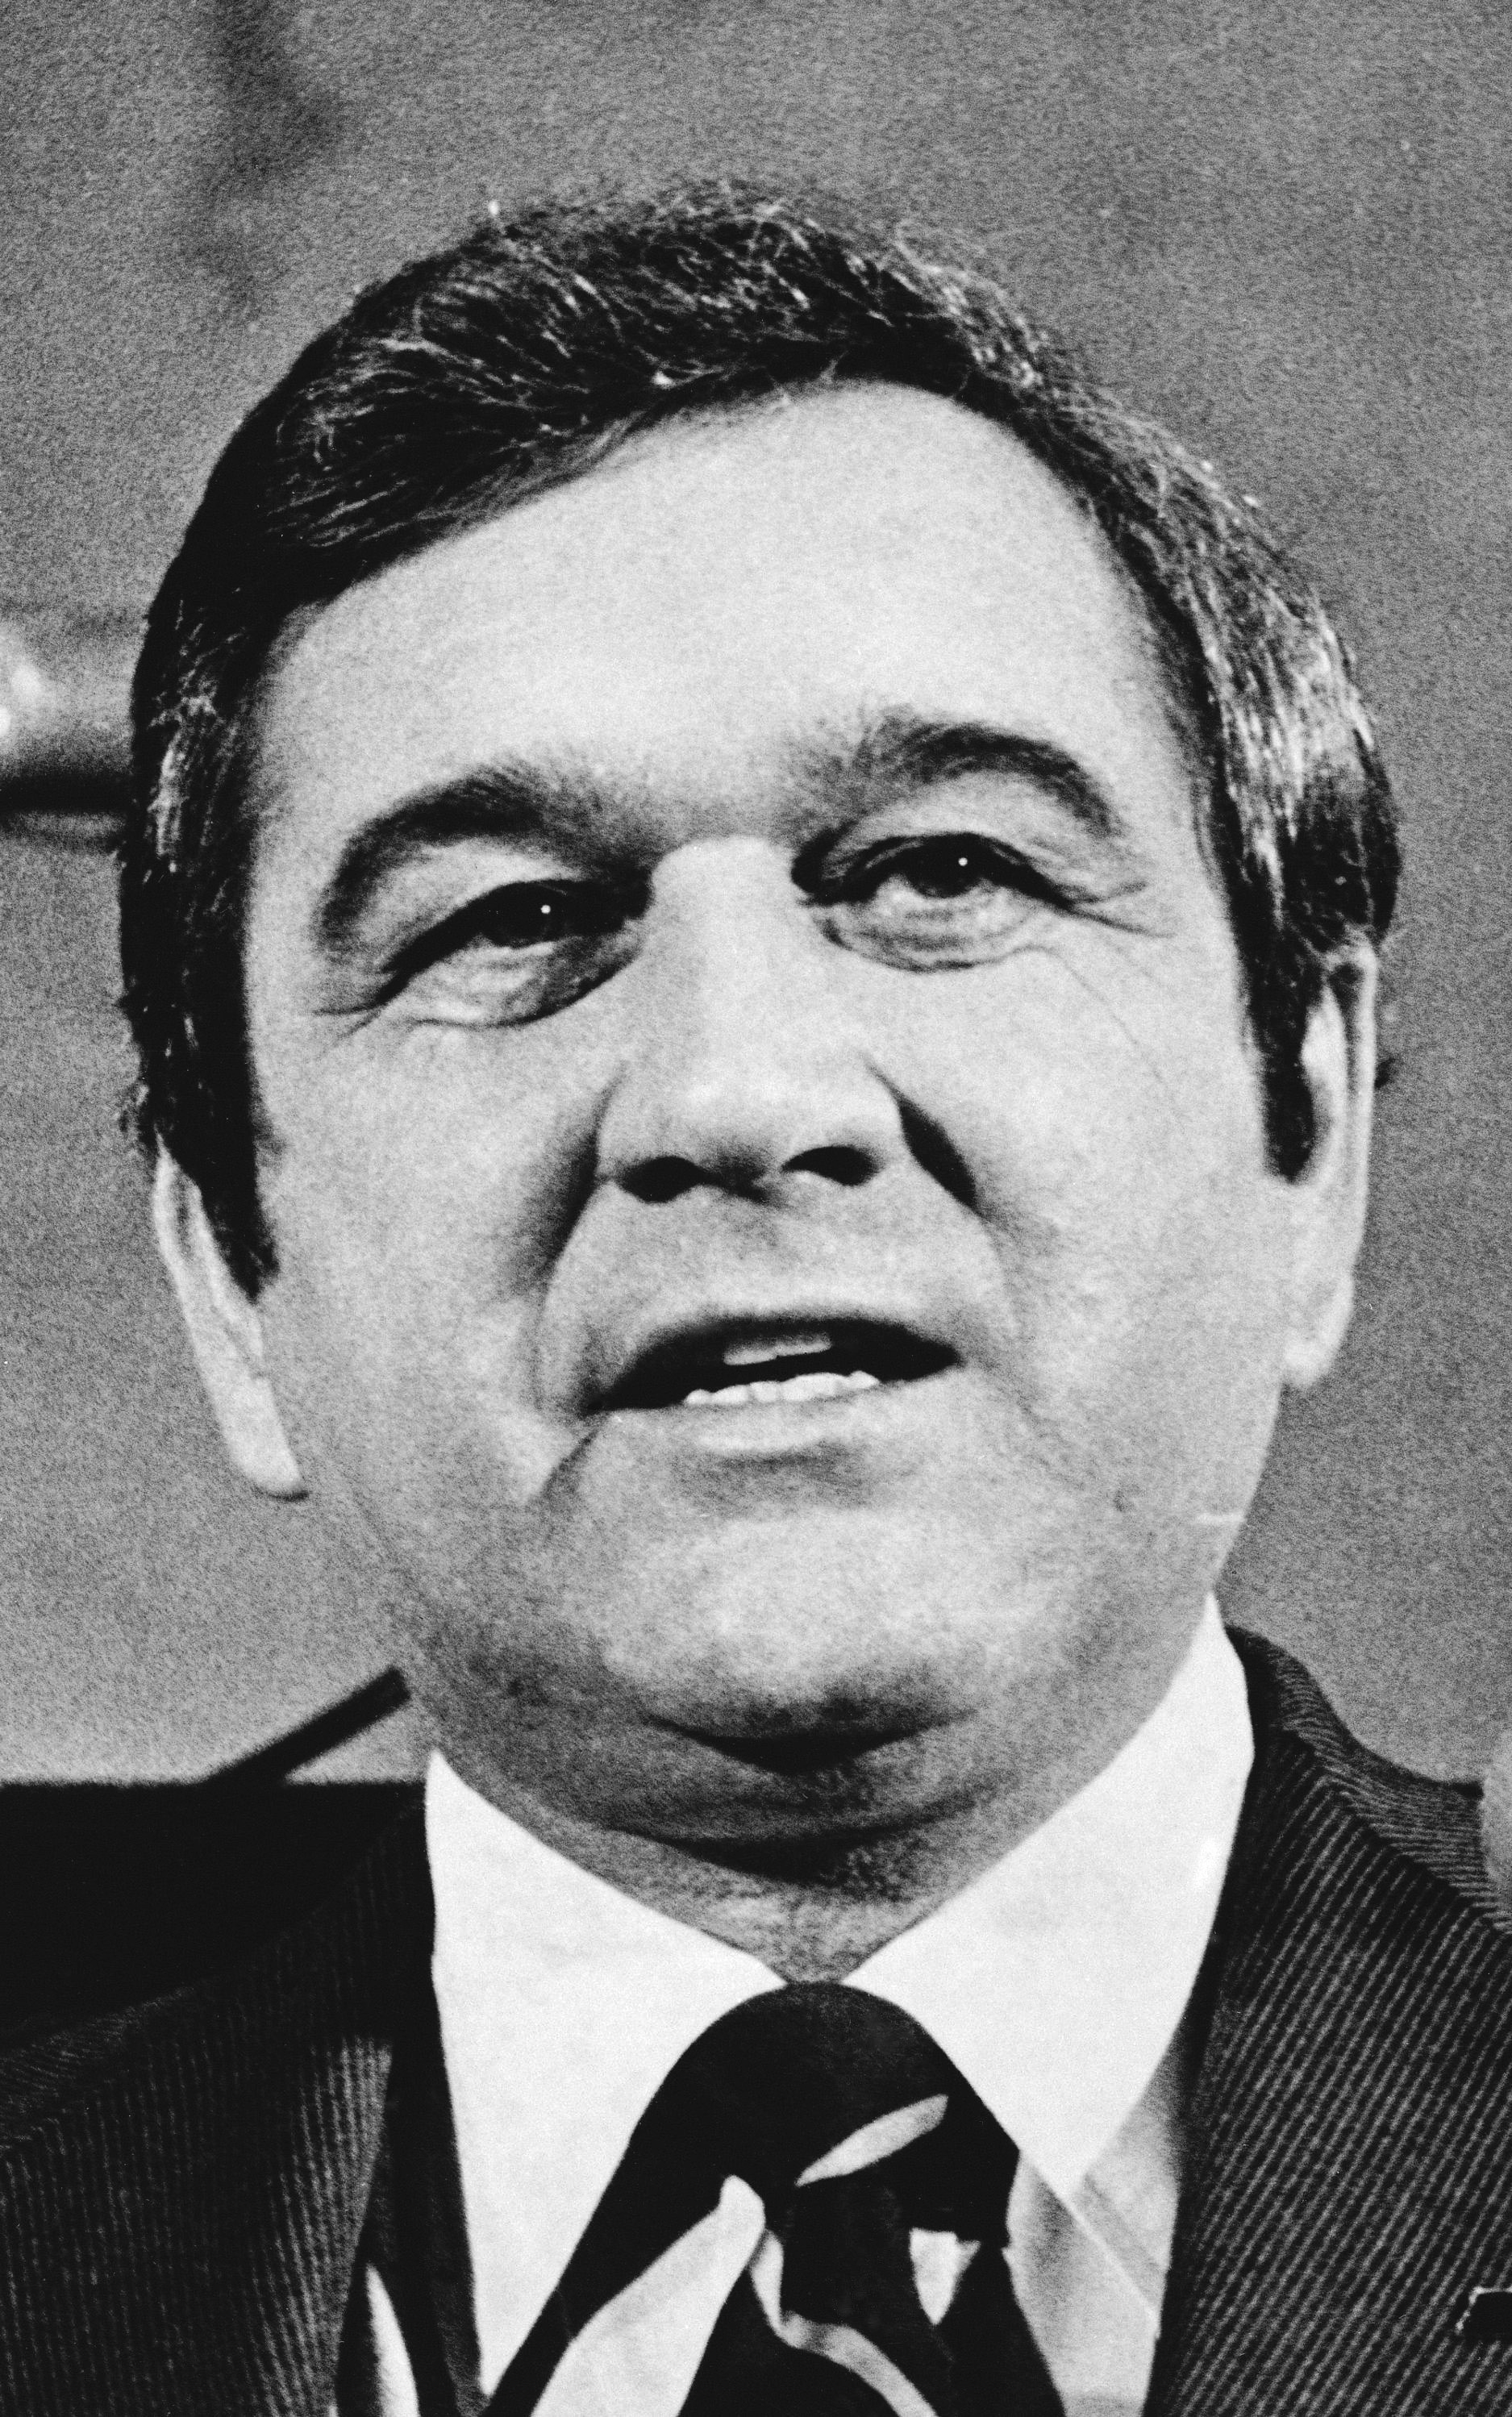 In this Jan. 11, 1979, file photo, Tennessee Gov. Ray Blanton appears before a joint session to give his final State of the State message in Nashville before leaving office on Jan. 20. Law enforcement officials announced Wednesday, June 9, 20201, the closing a 42-year-old cold case of Samuel Pettyjohn, a Chattanooga businessman who was shot and killed in 1979 in a contract killing that former Gov. Ray Blanton's administration helped pay for.